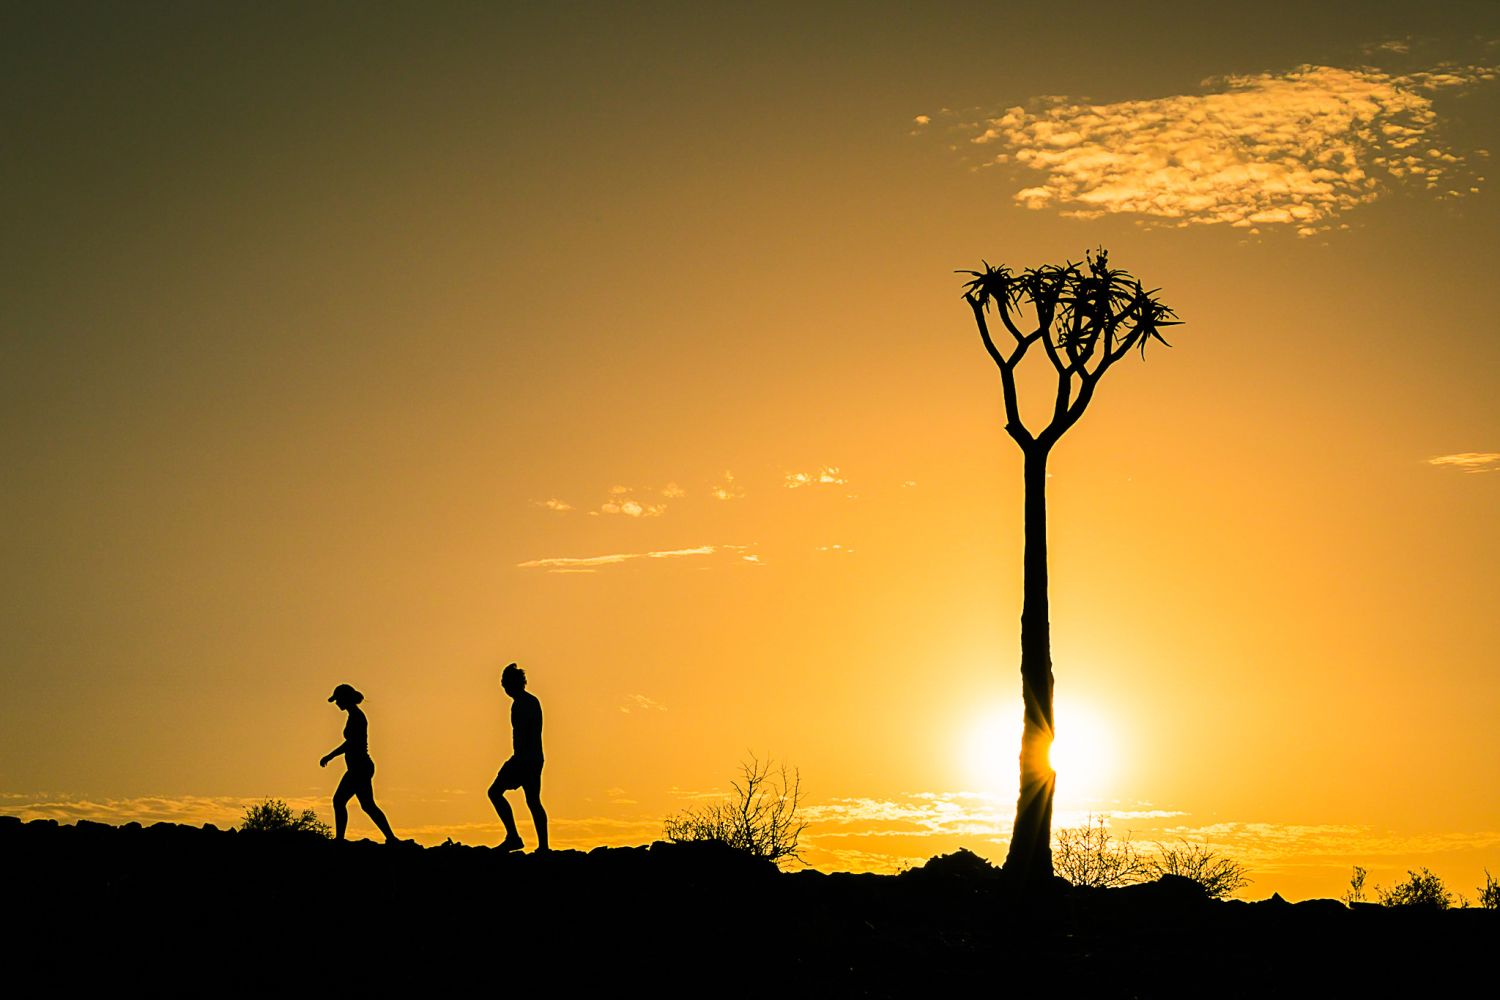 namibia_exploring_silhoutte